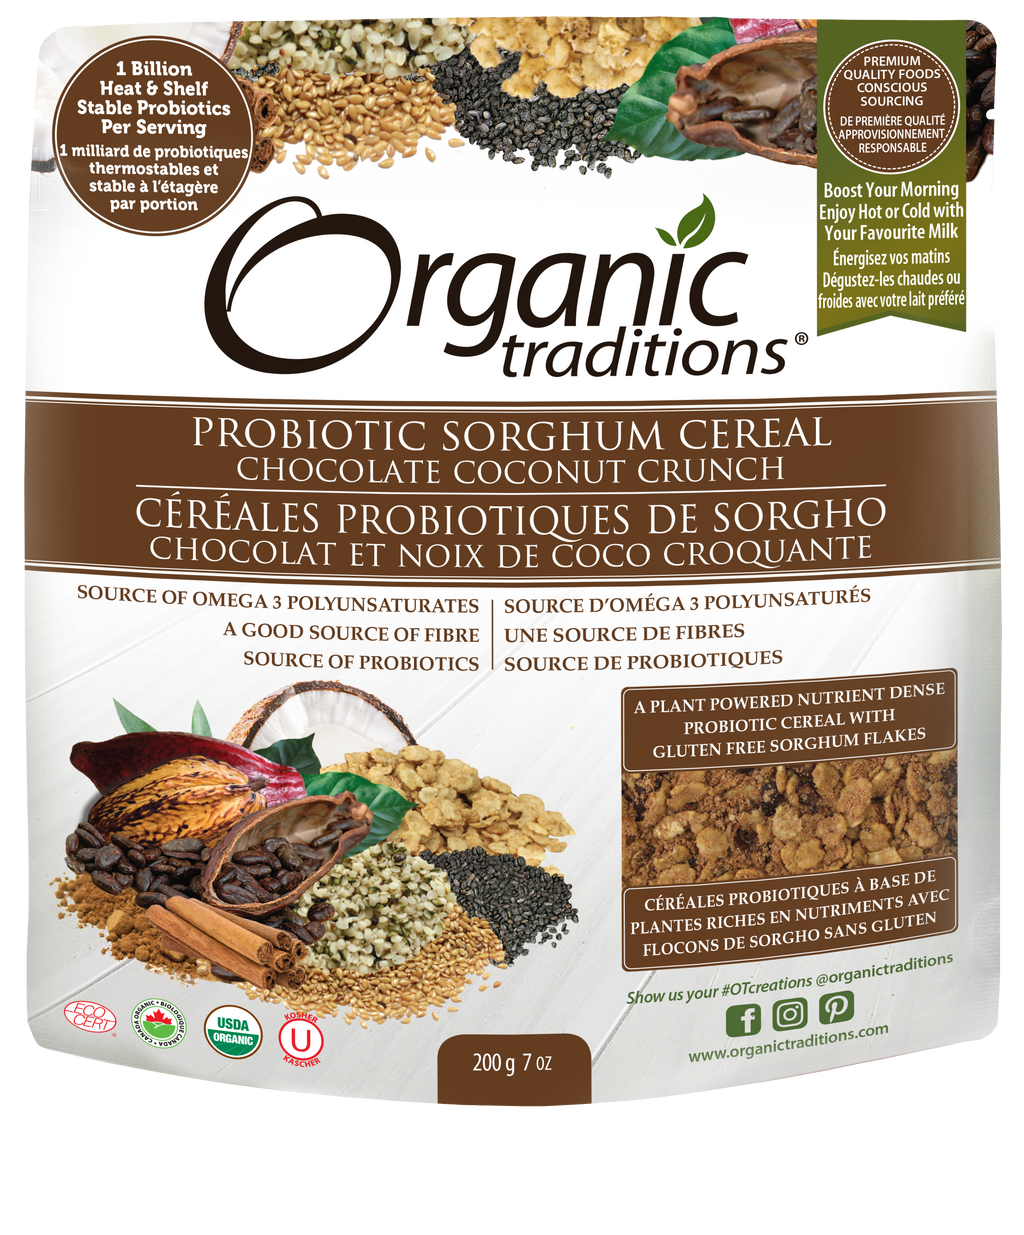 organic probiotic sorghum cereal chocolate coconut crunch by organic traditions canadian front of bag image